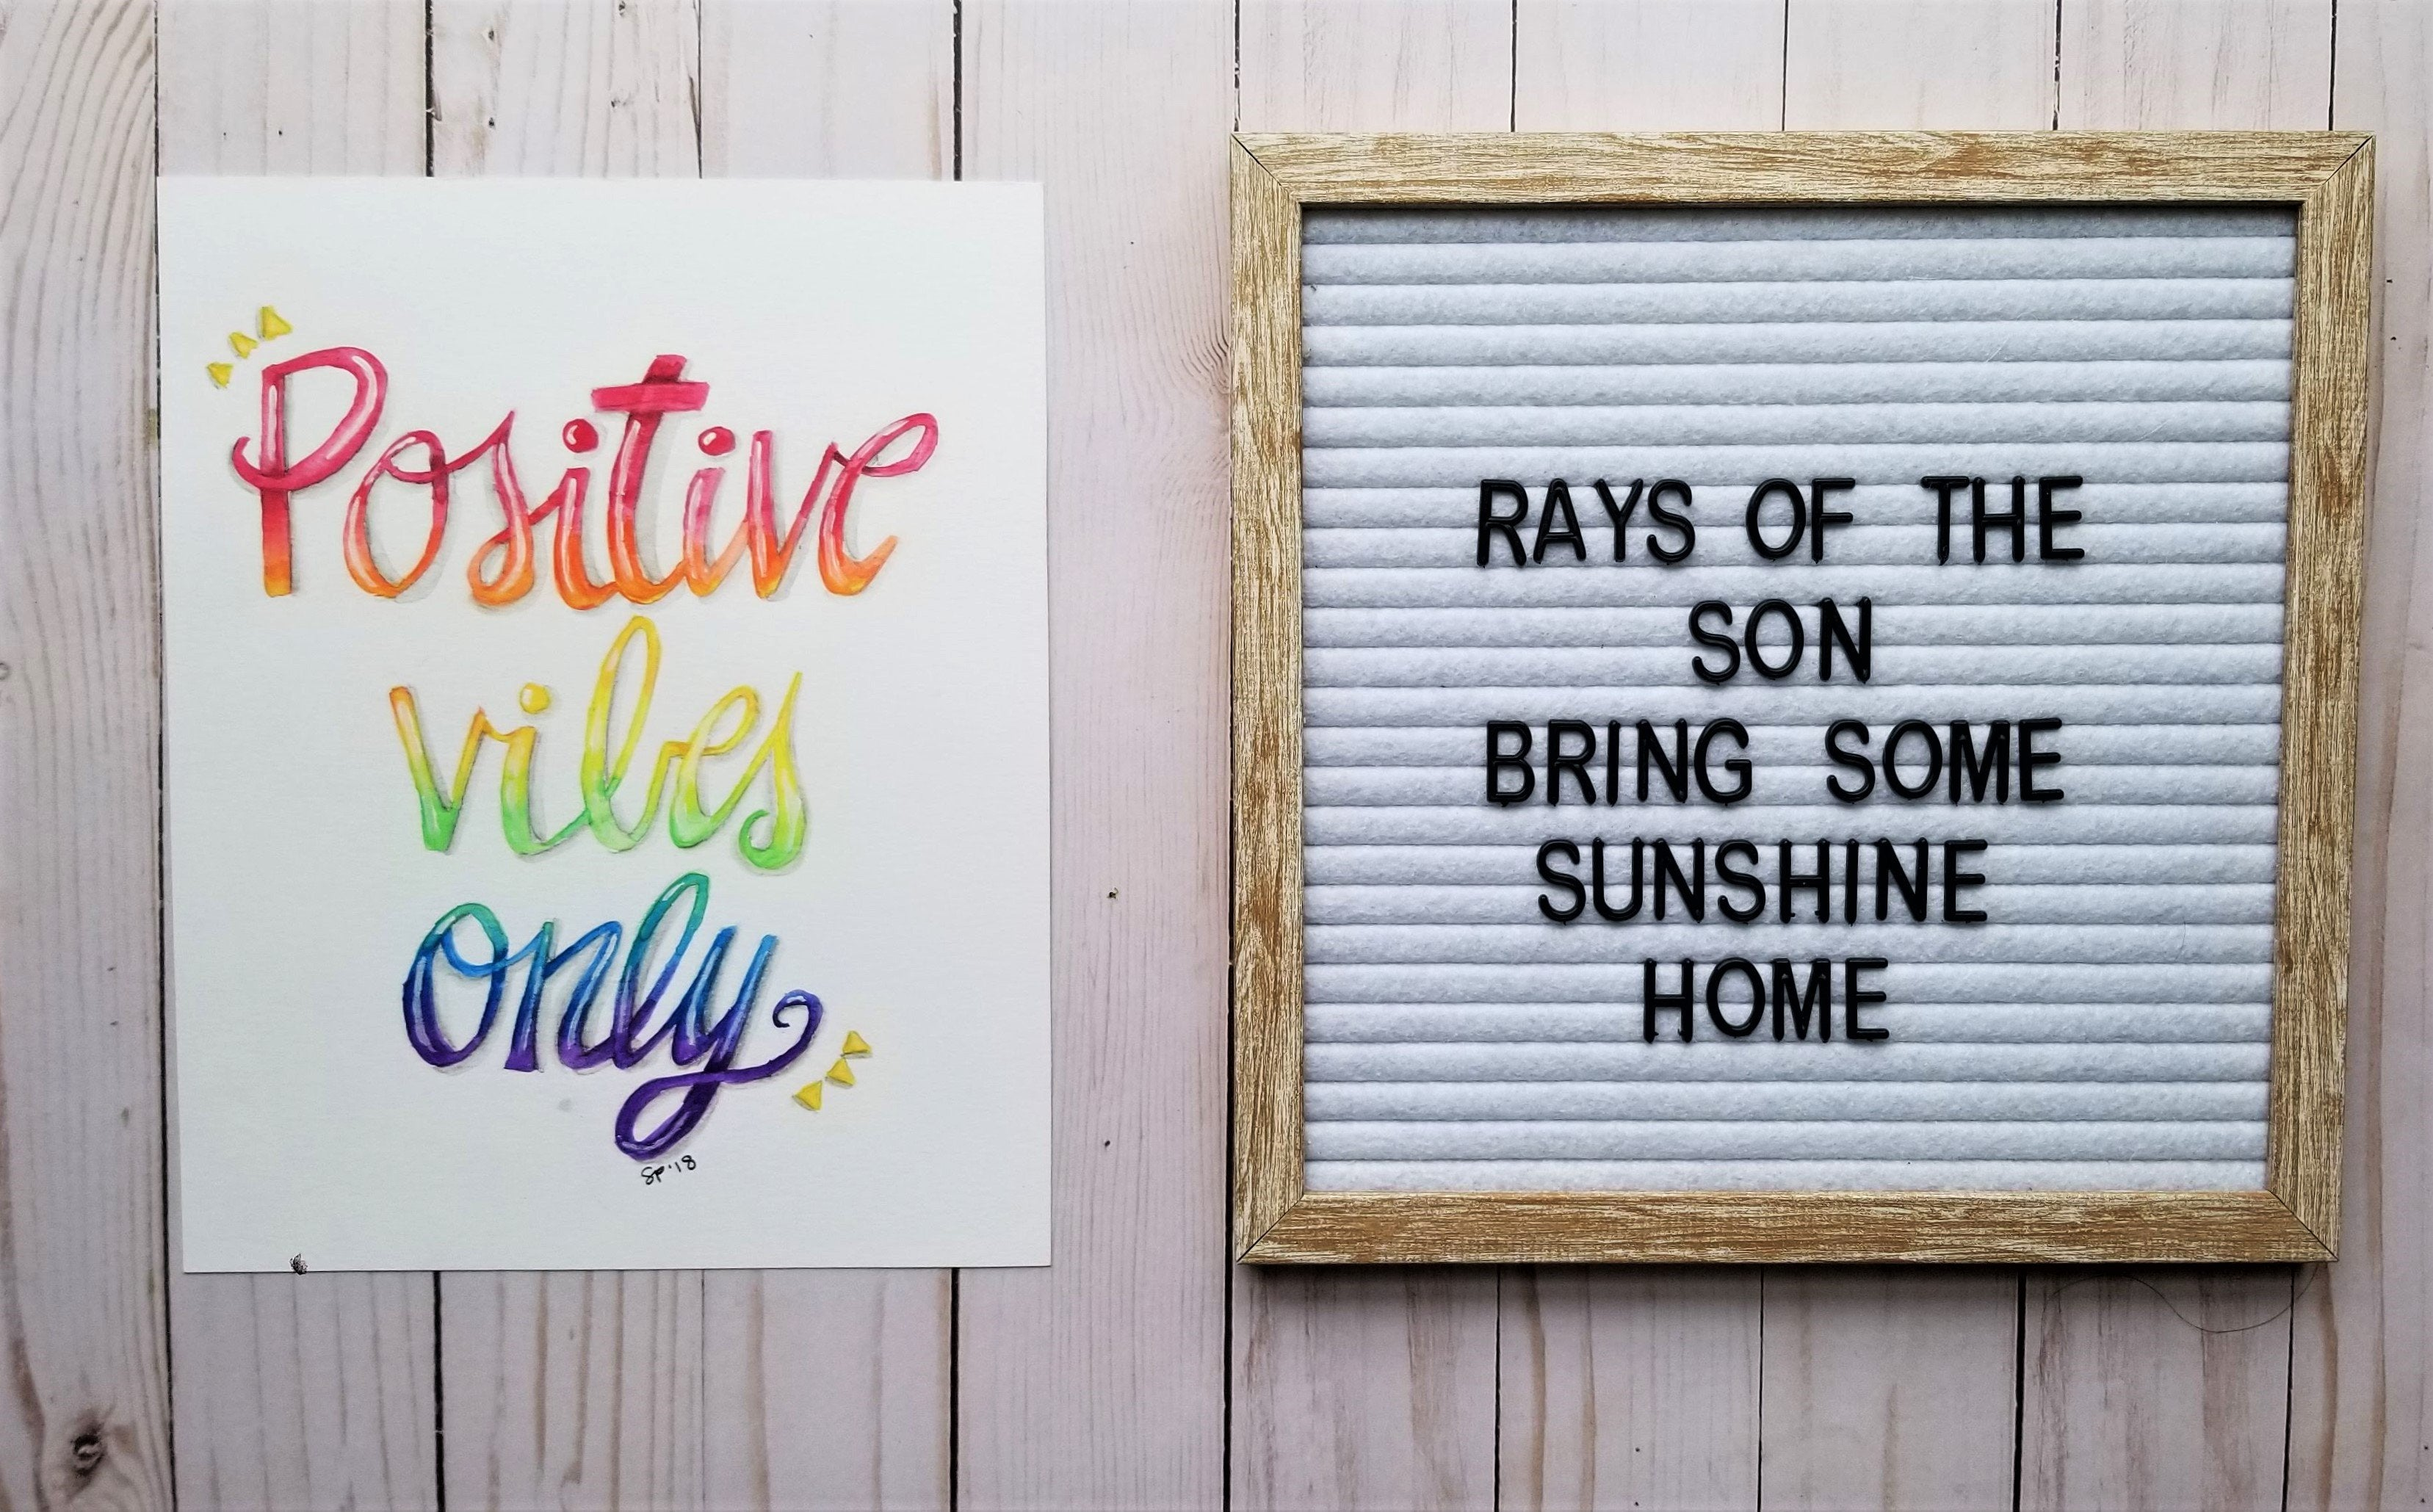 Positive Vibes Only Typography - Rays of the Son